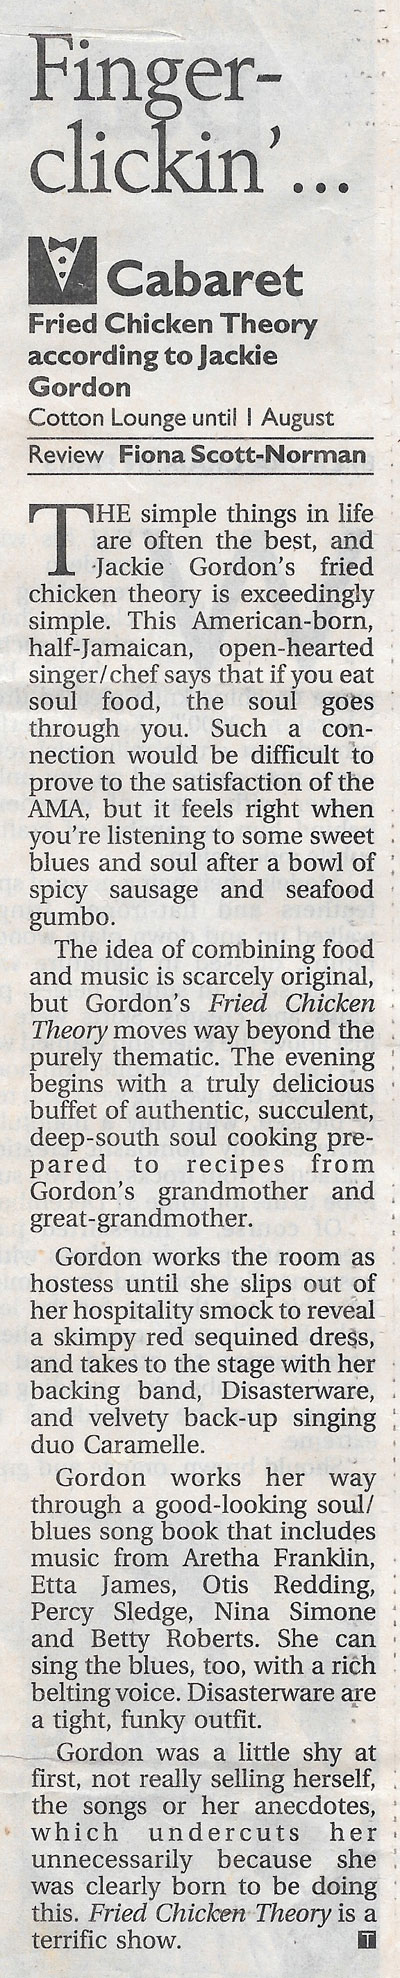 The Fried Chicken Theory According review 1999 The Age